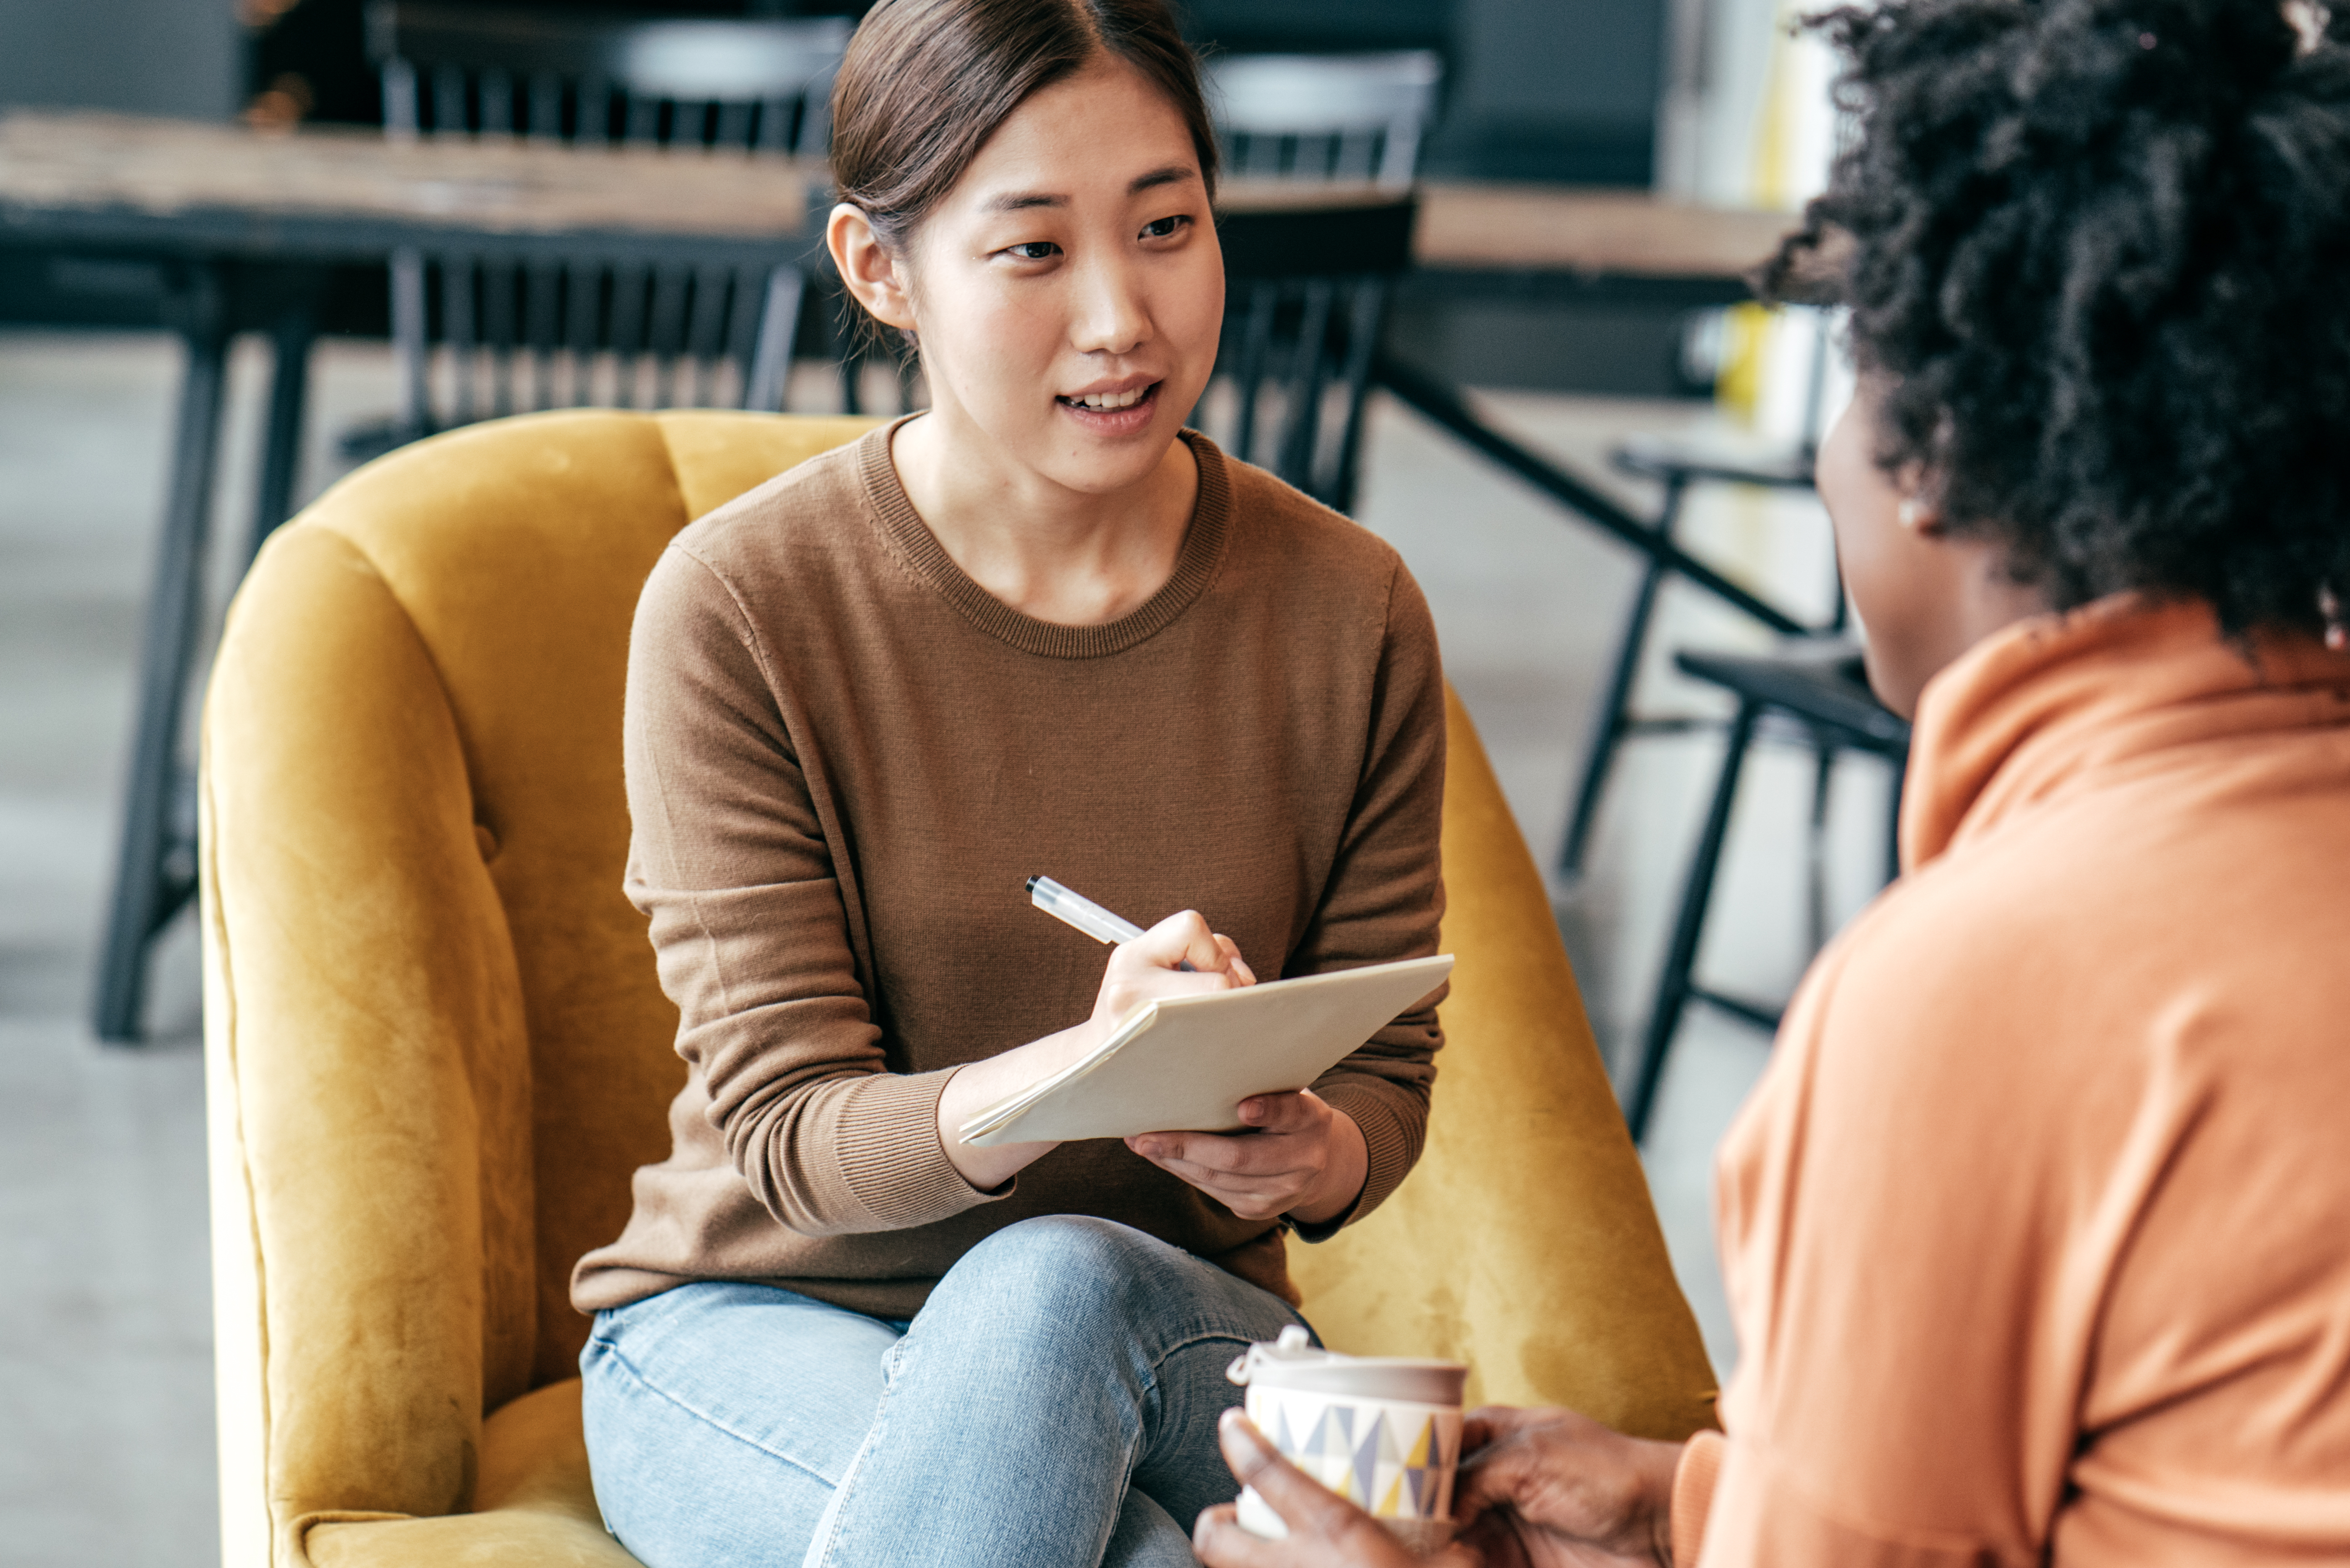 How HR Can Use Stay Interviews to Avoid Exit Interviews